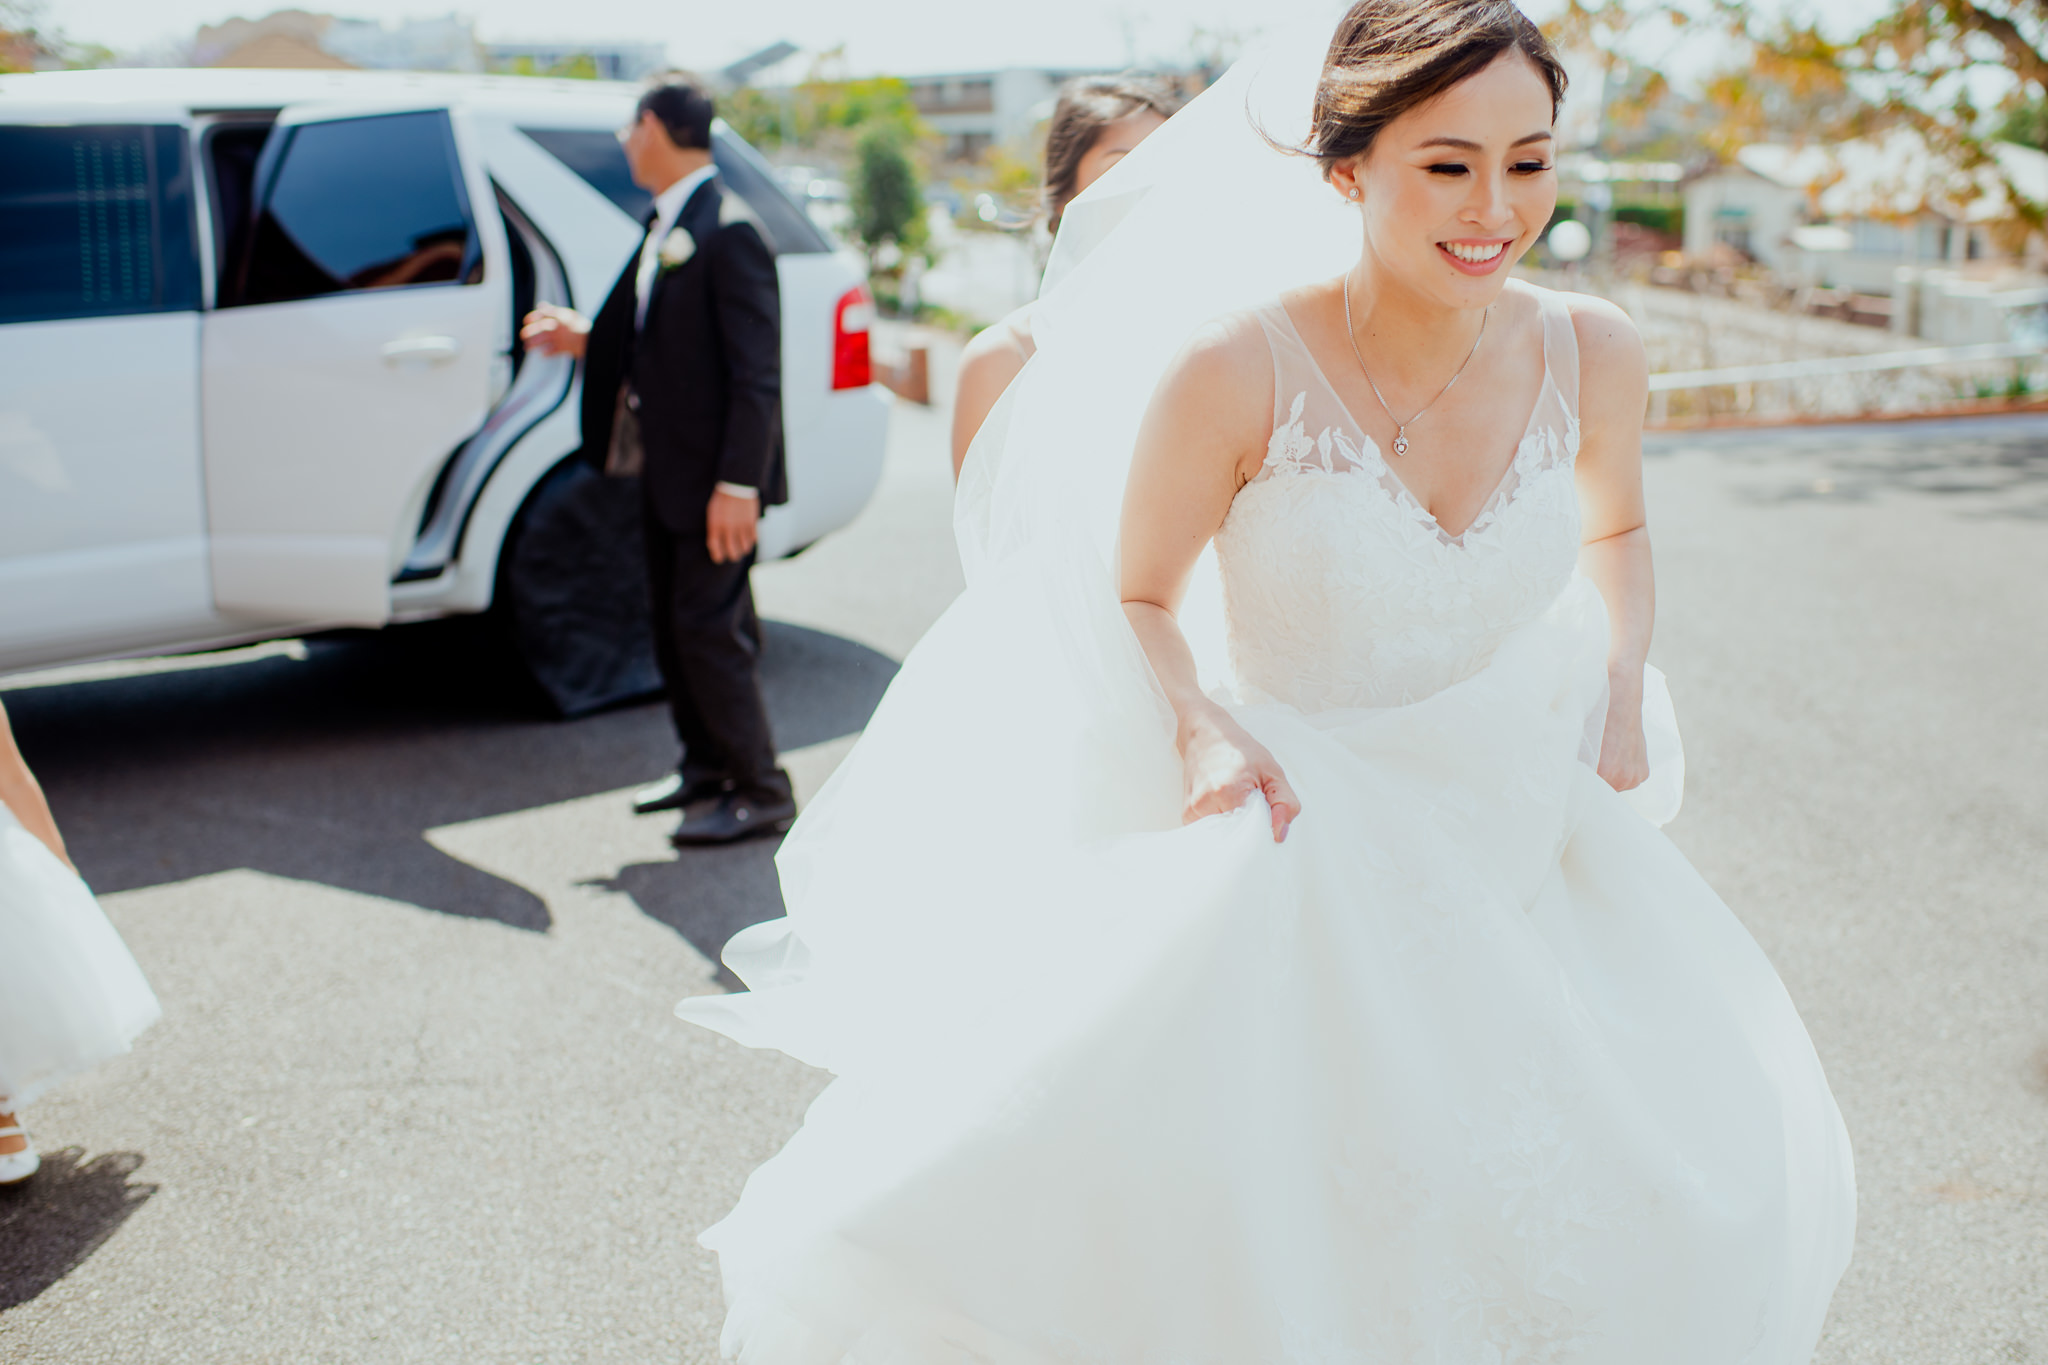 A bride in her wedding dress excitedly walks away from her car